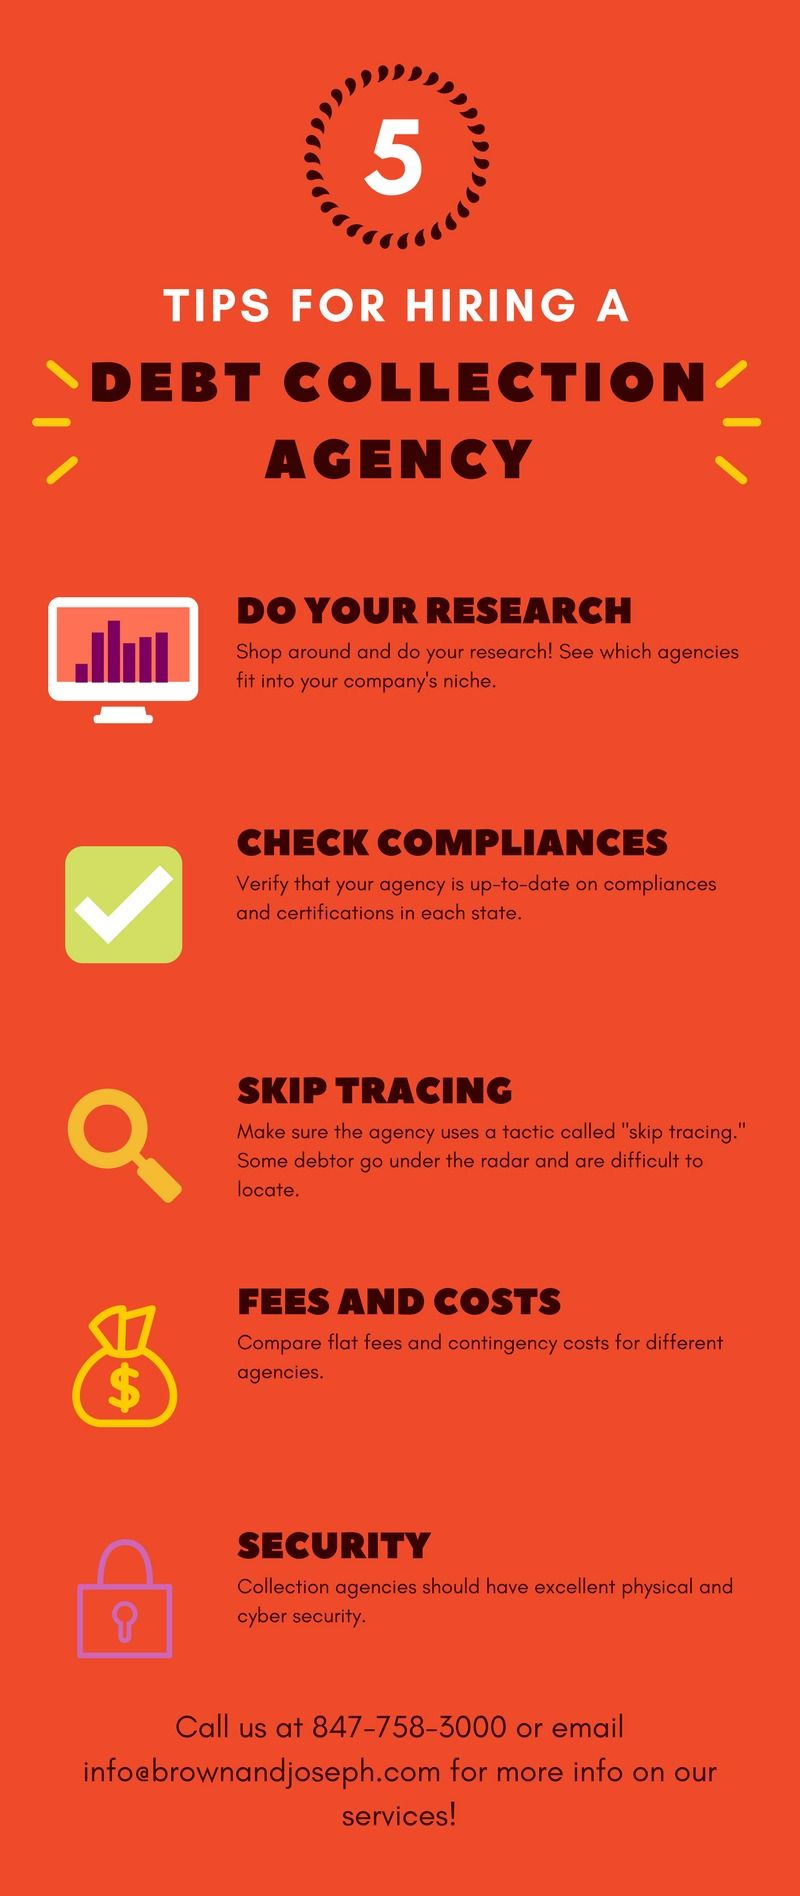 5 Tips For Hiring A Debt Collection Agency